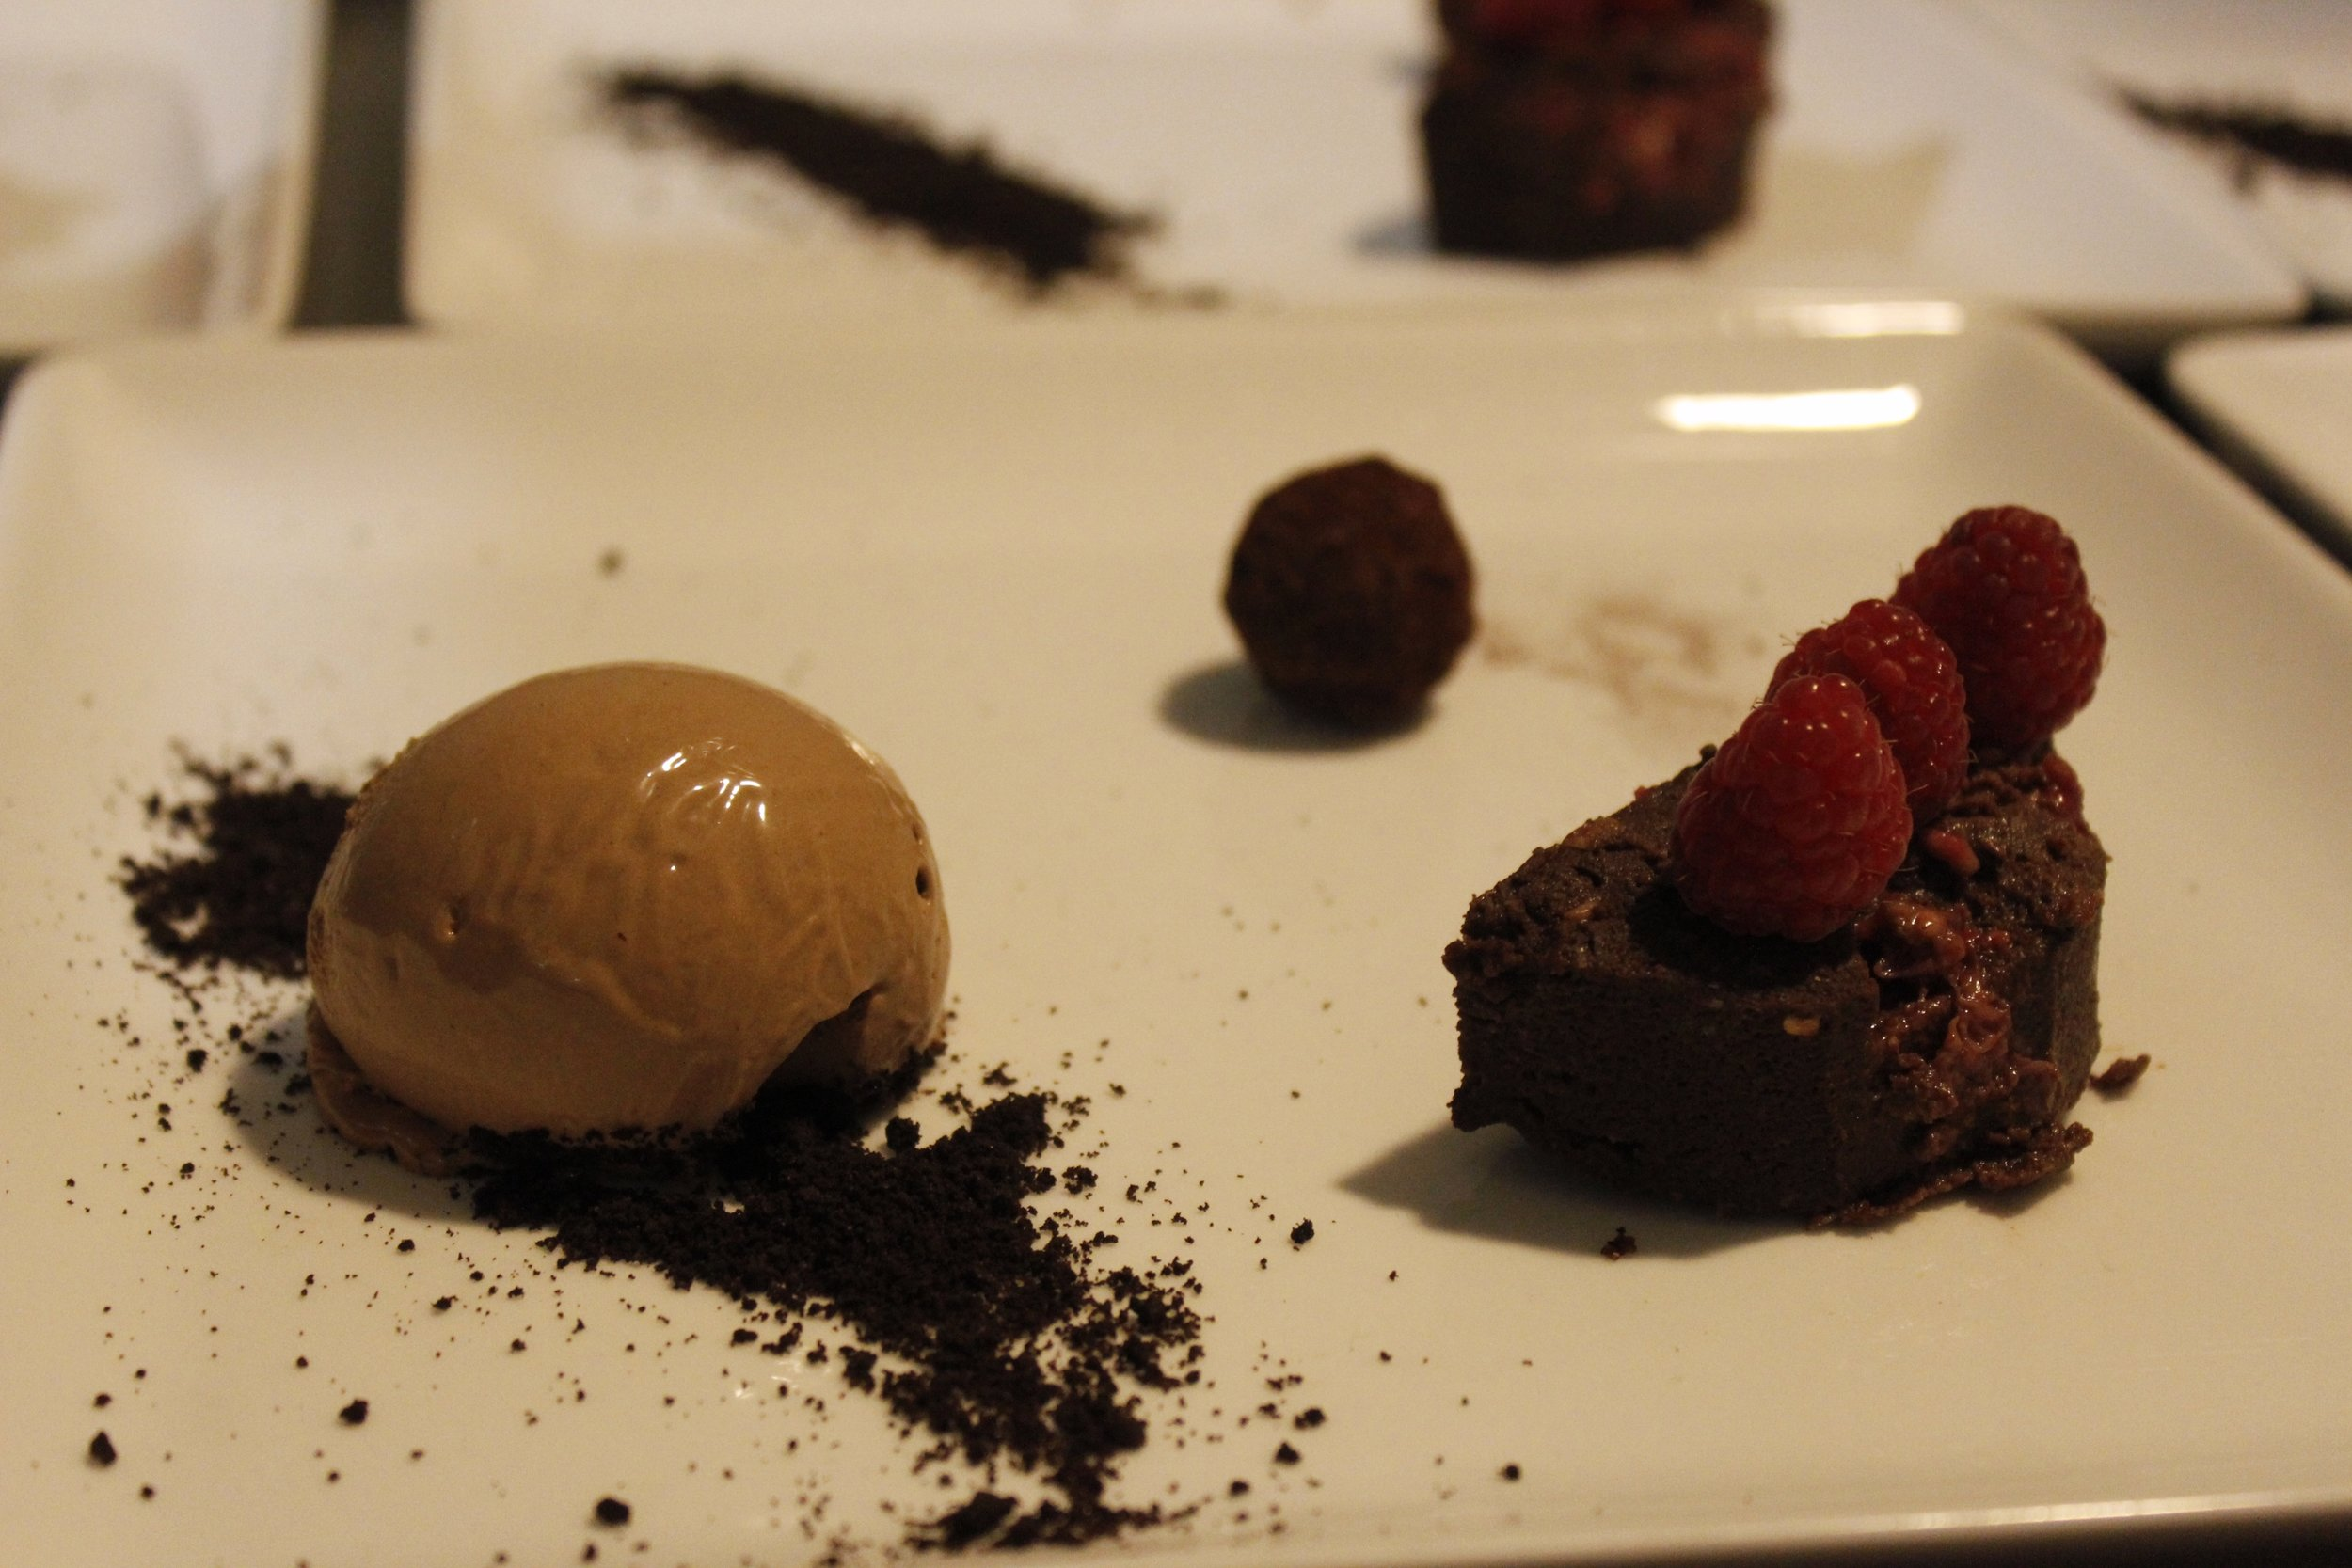 picture of chocolate cake and ice cream dessert